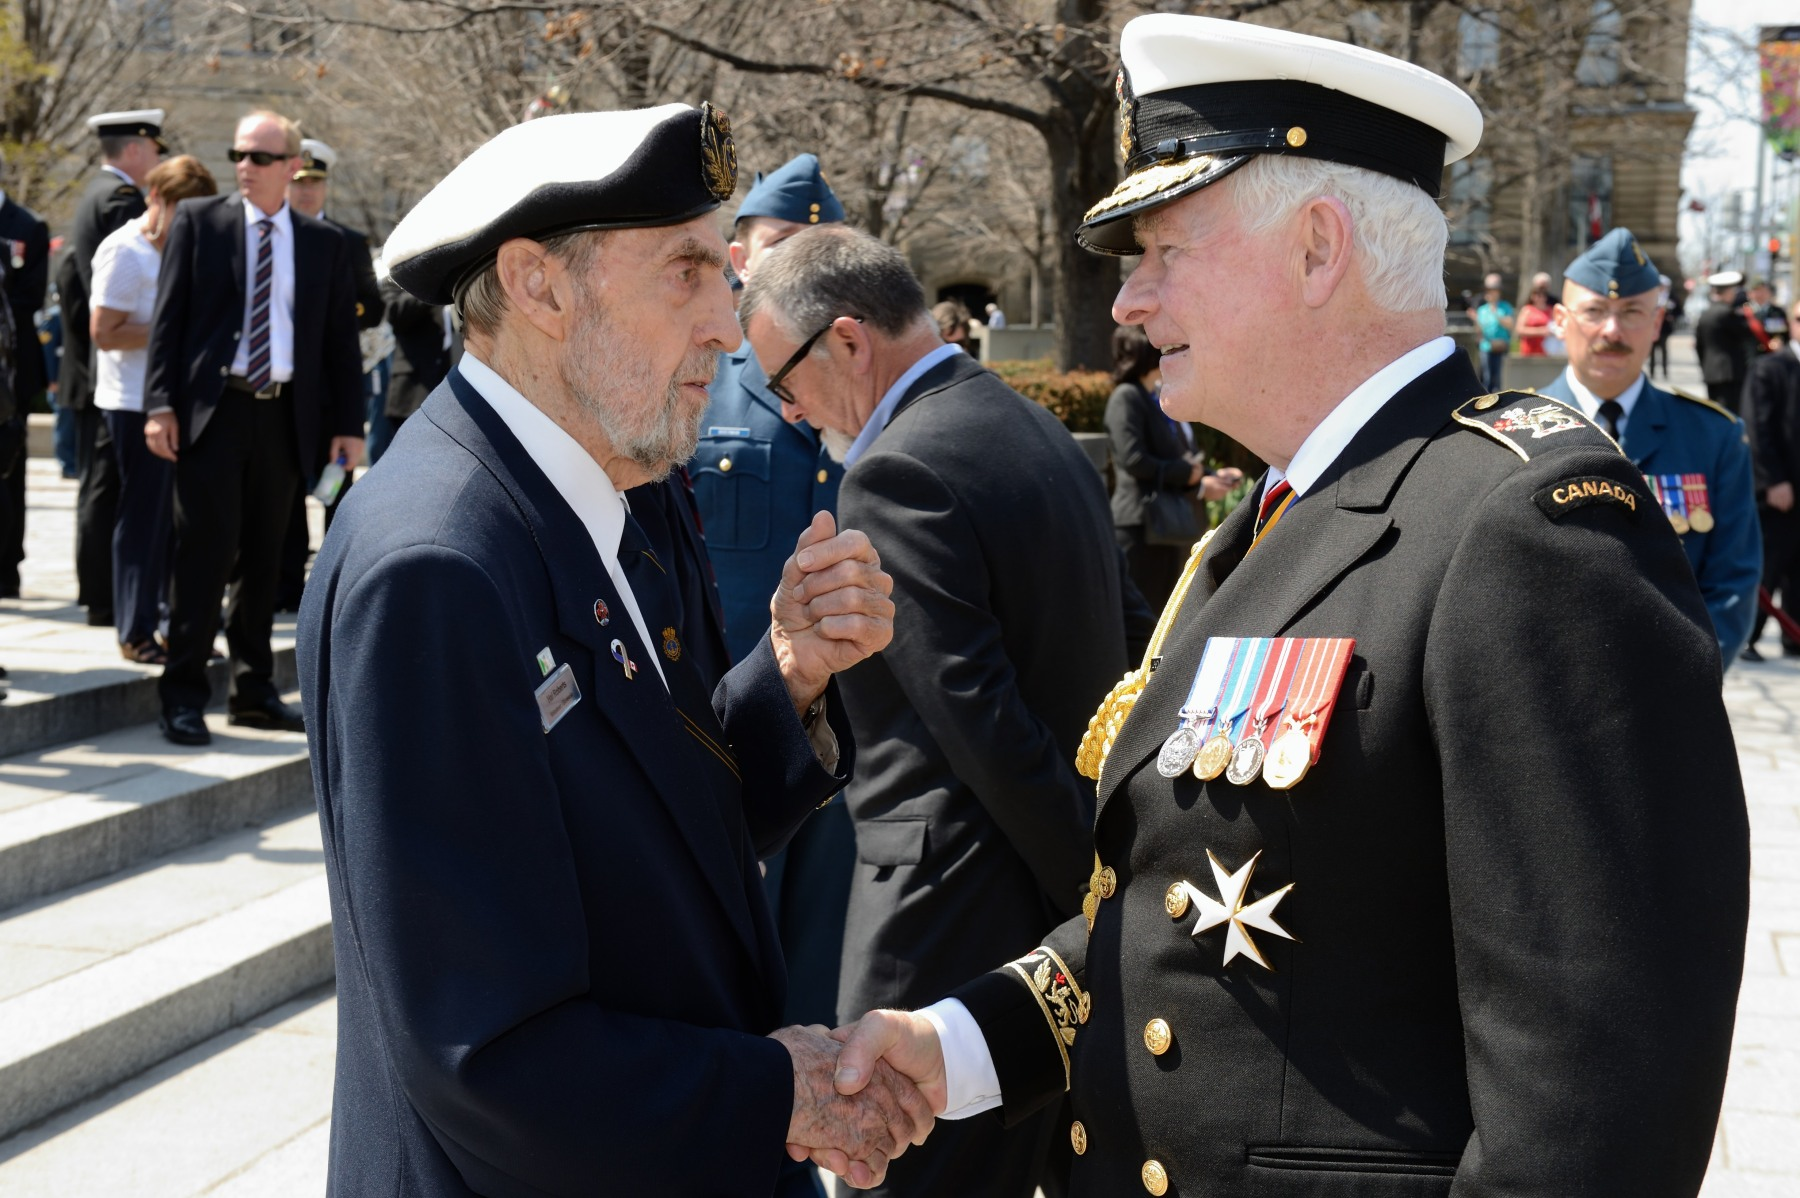 Before leaving, the Governor General spoke with a veteran and thanked him for serving his country.